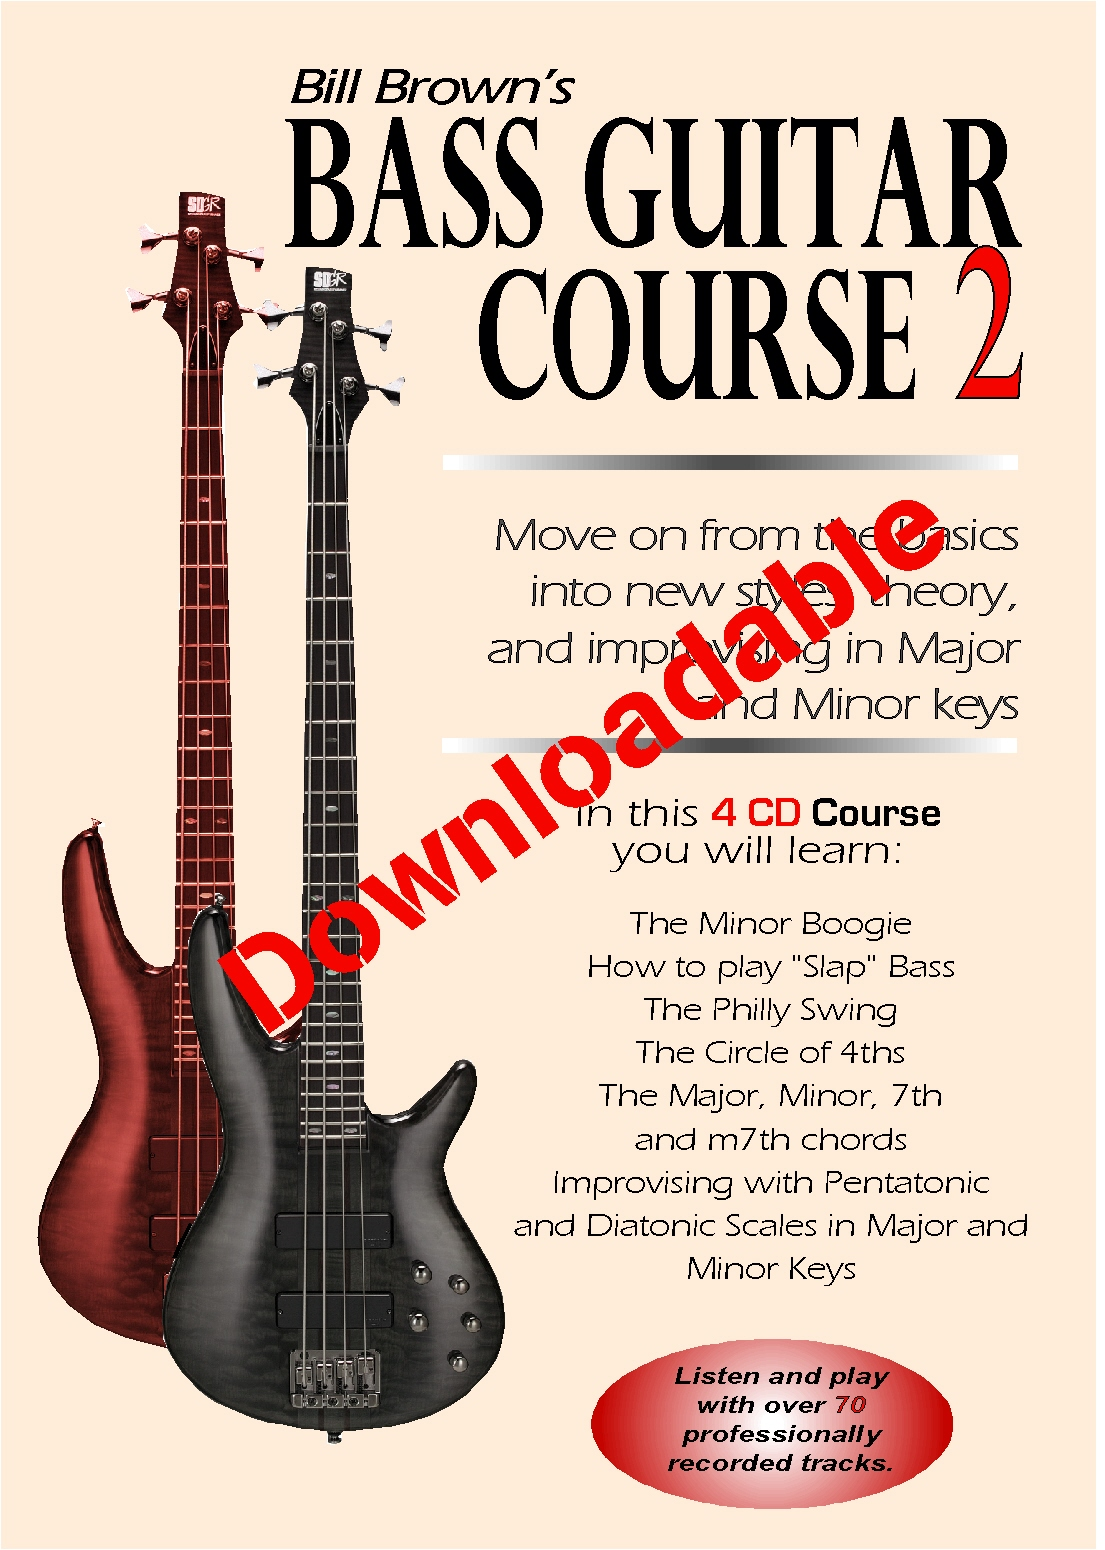 Bass Guitar Course 2 (Downloadable)